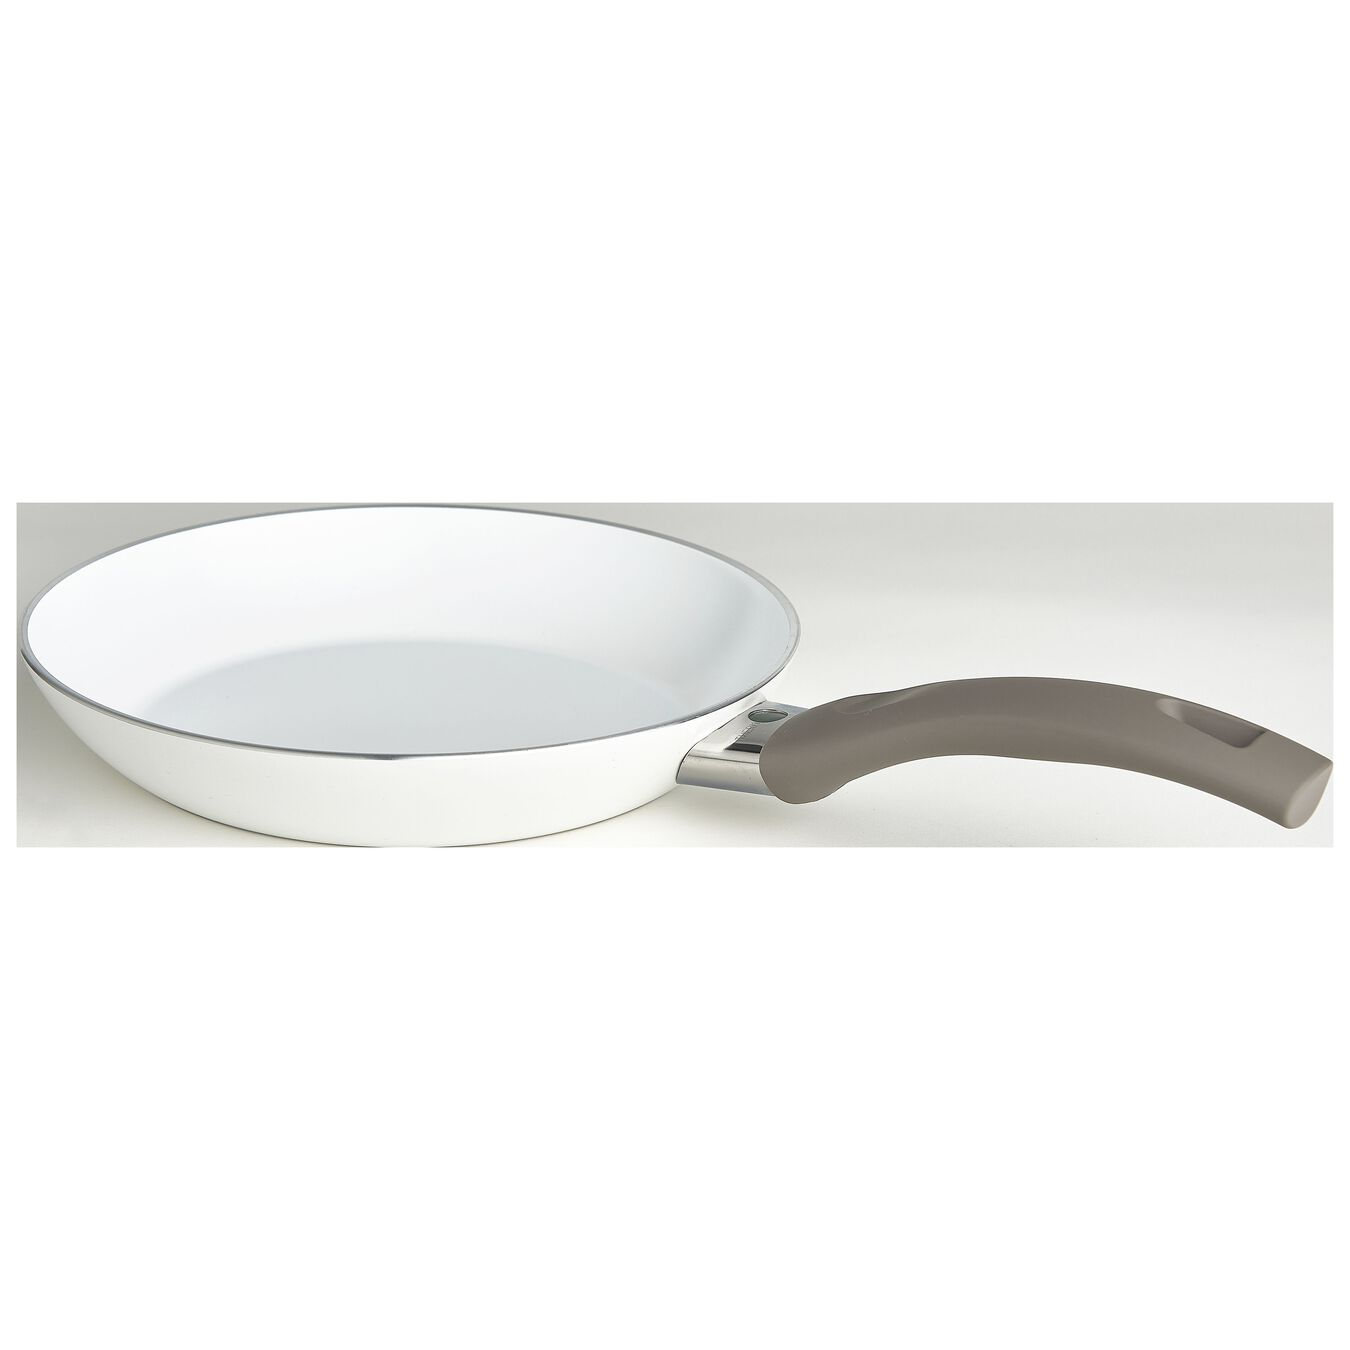 20 cm / 8 inch Special Formula Steel Frying pan,,large 1